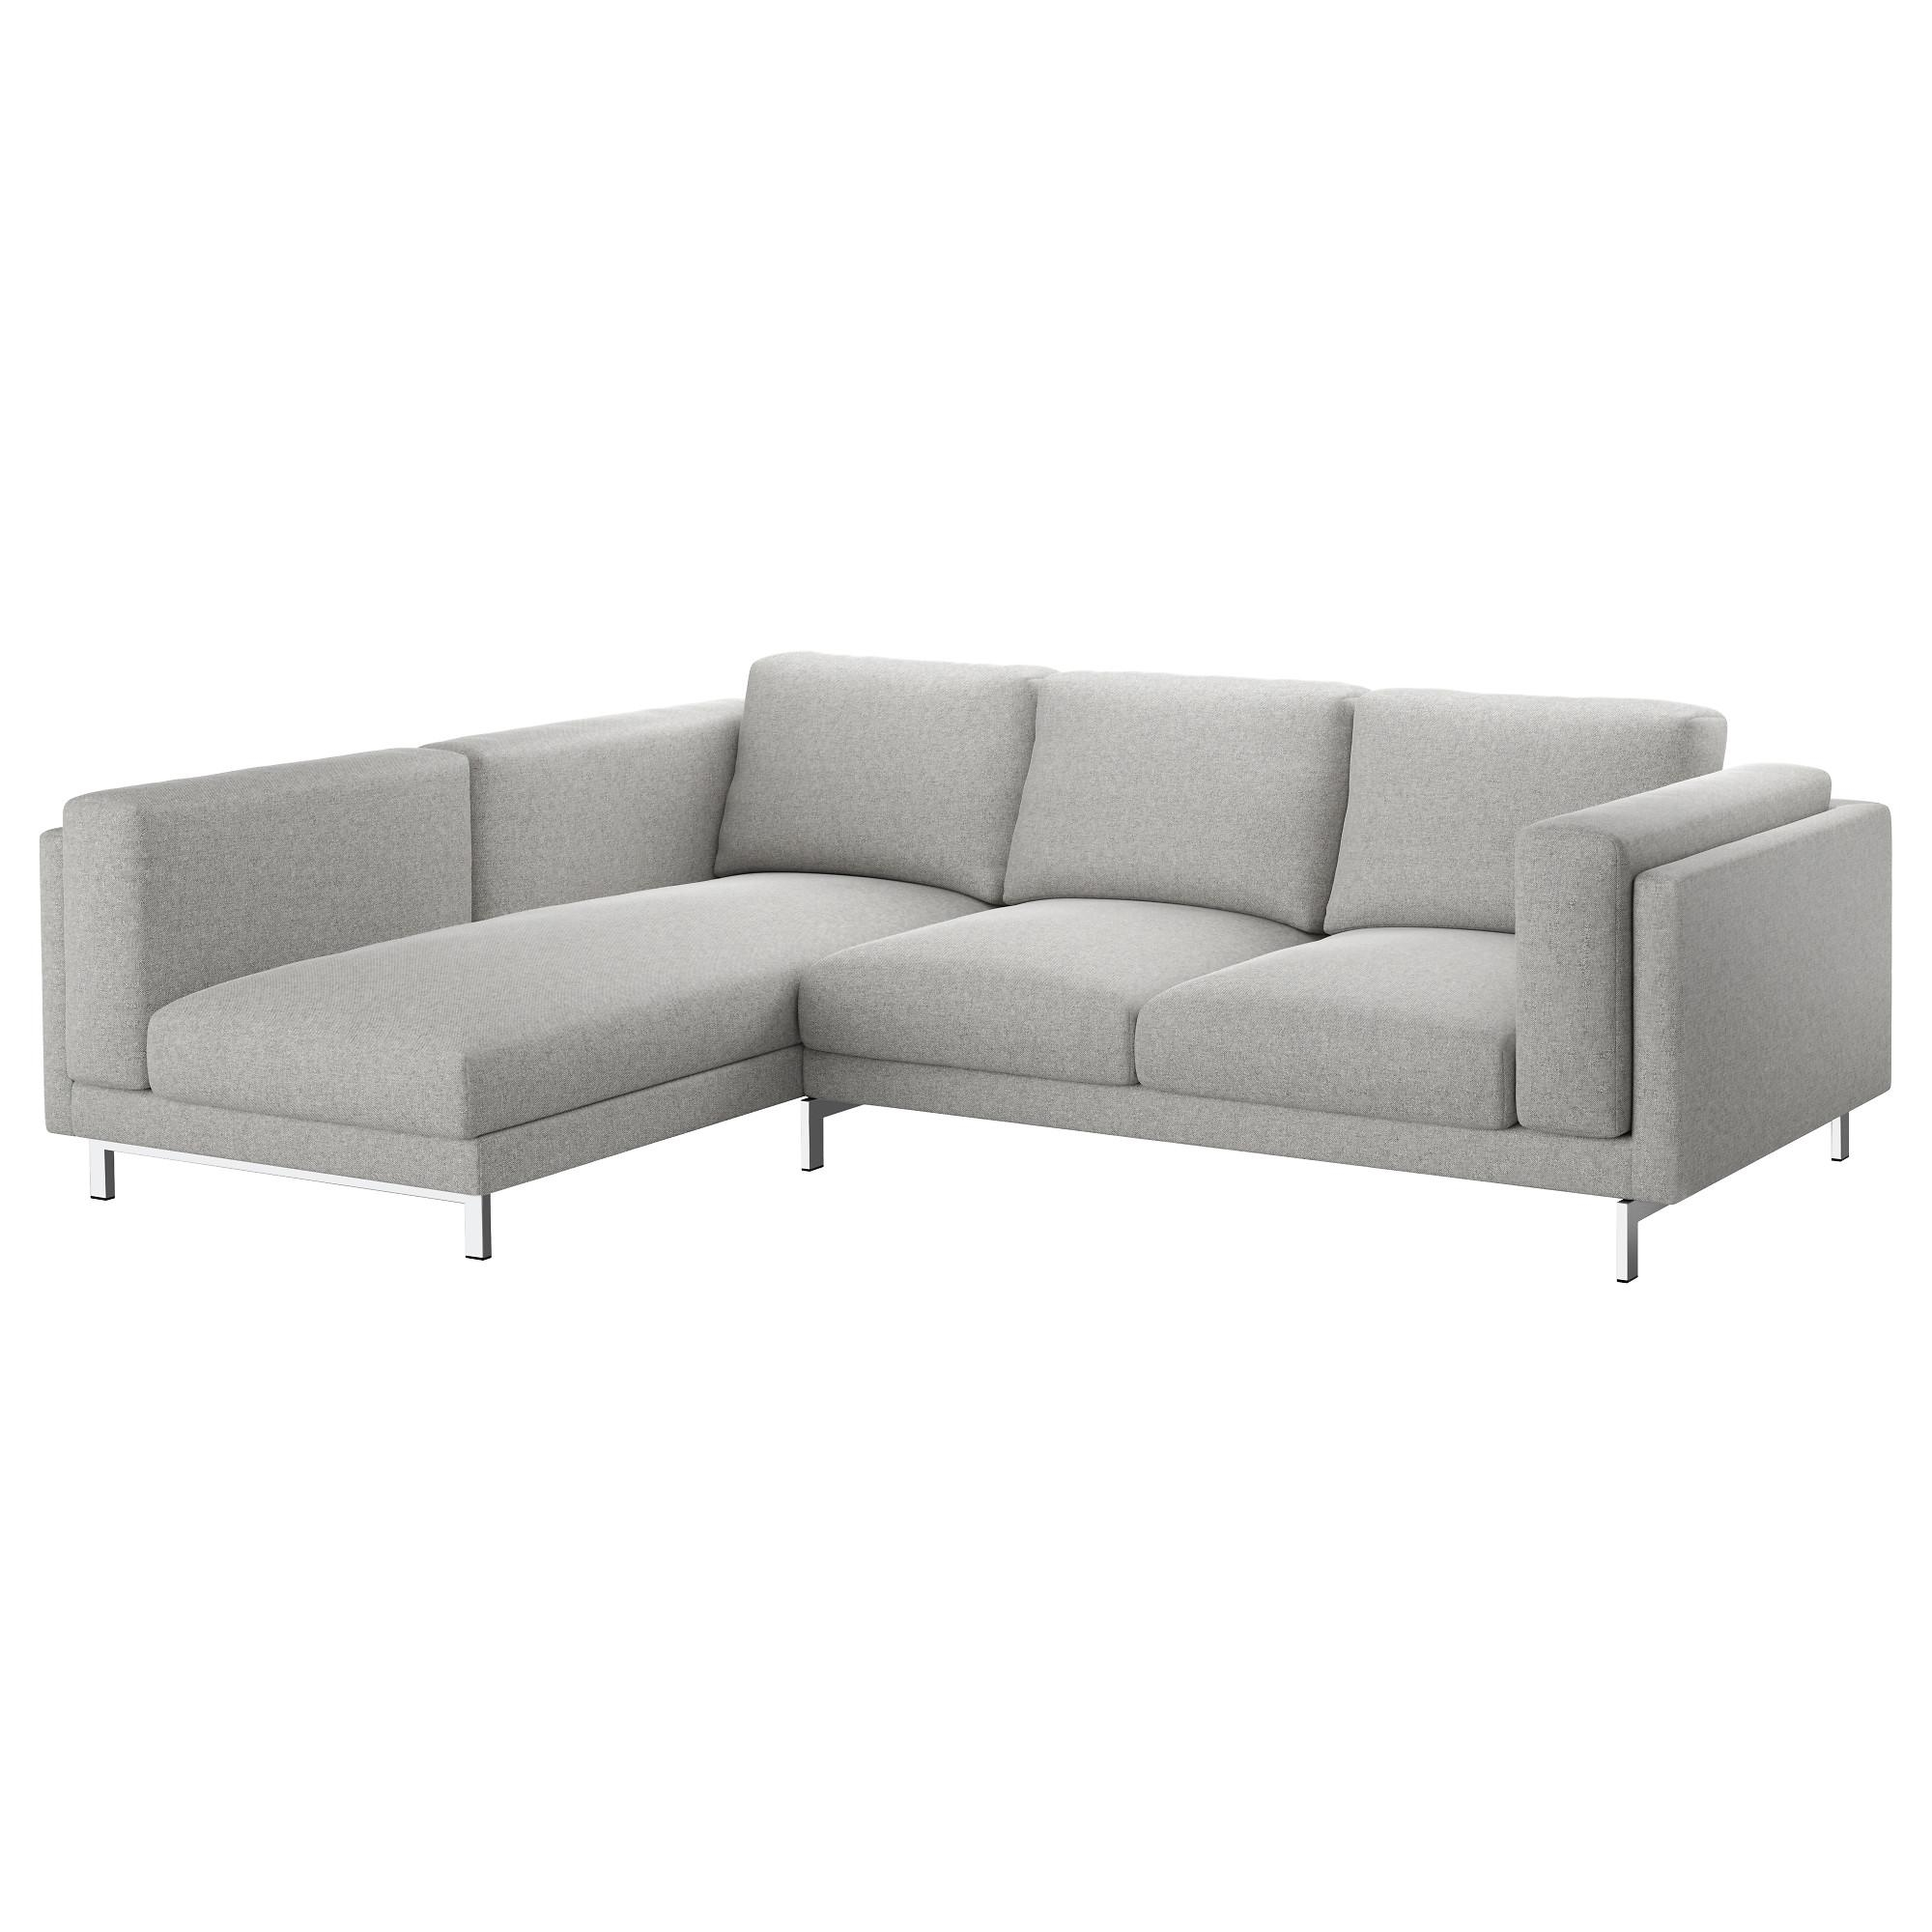 Nockeby 3 Seat Sofa With Chaise Longue, Left/tallmyra White/black With Regard To Ikea Chaise Lounge Sofa (Image 16 of 20)